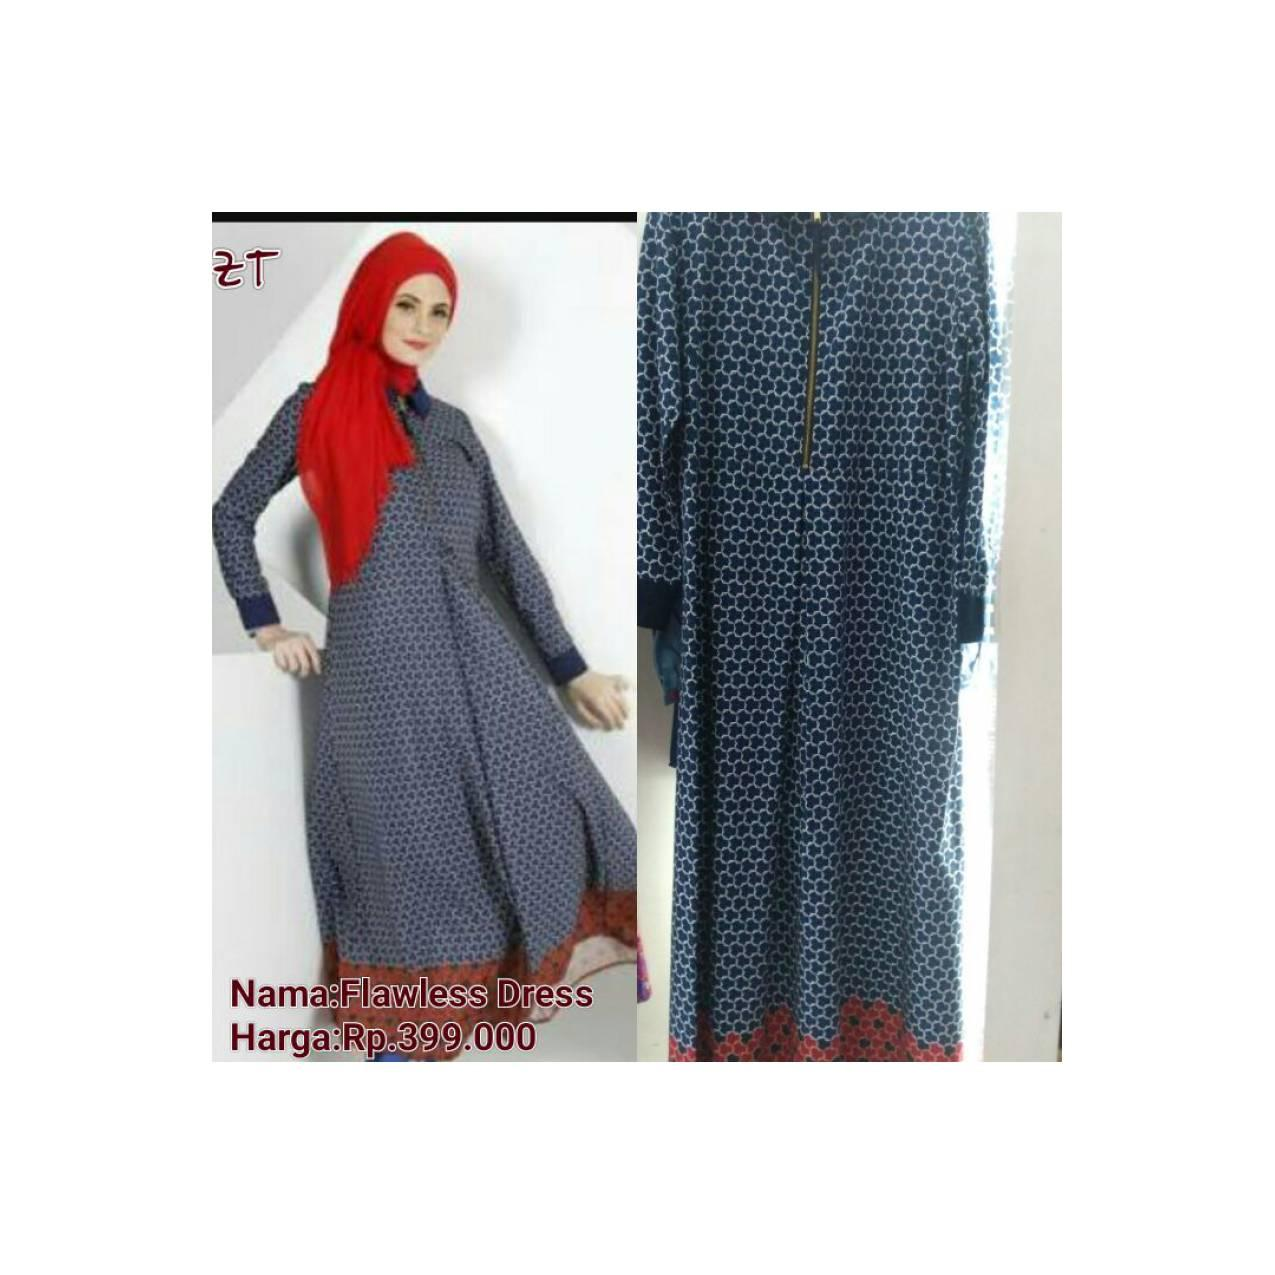 Zoya Gamis Flawless Dress